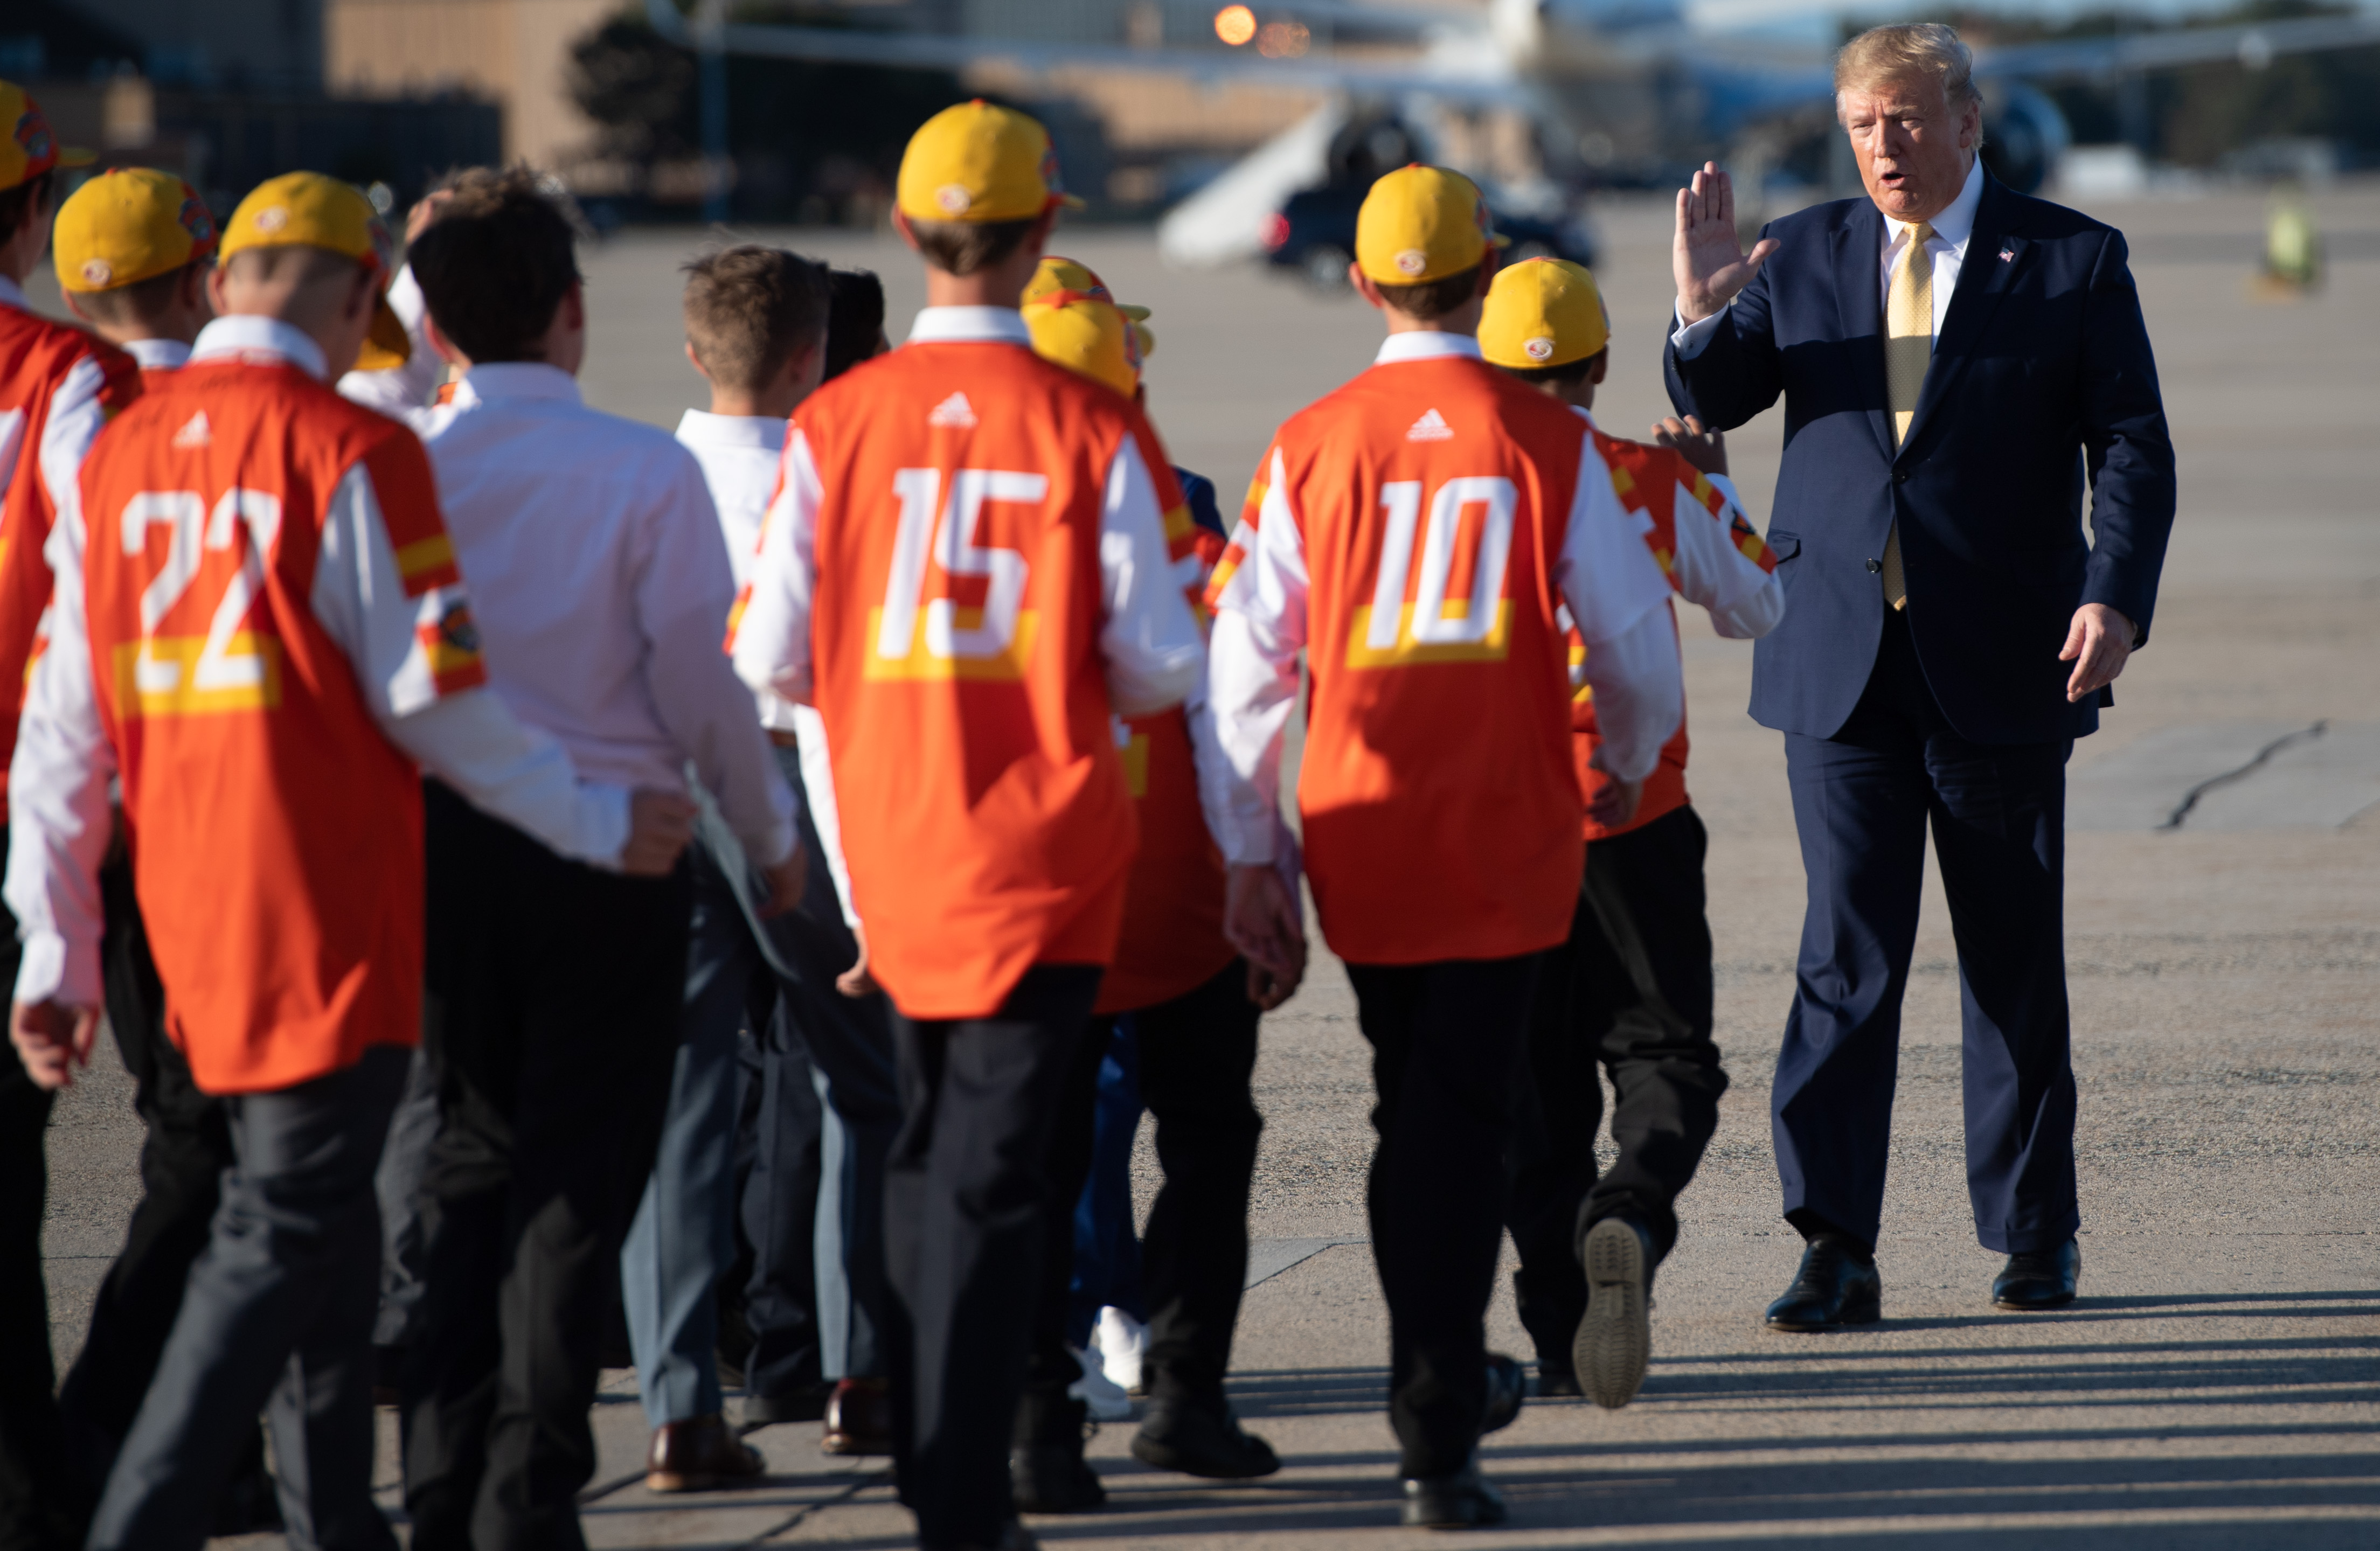 US President Donald Trump greets members of the Little League World Championship baseball team, the Eastbank All Stars of Louisiana before boarding Air Force One